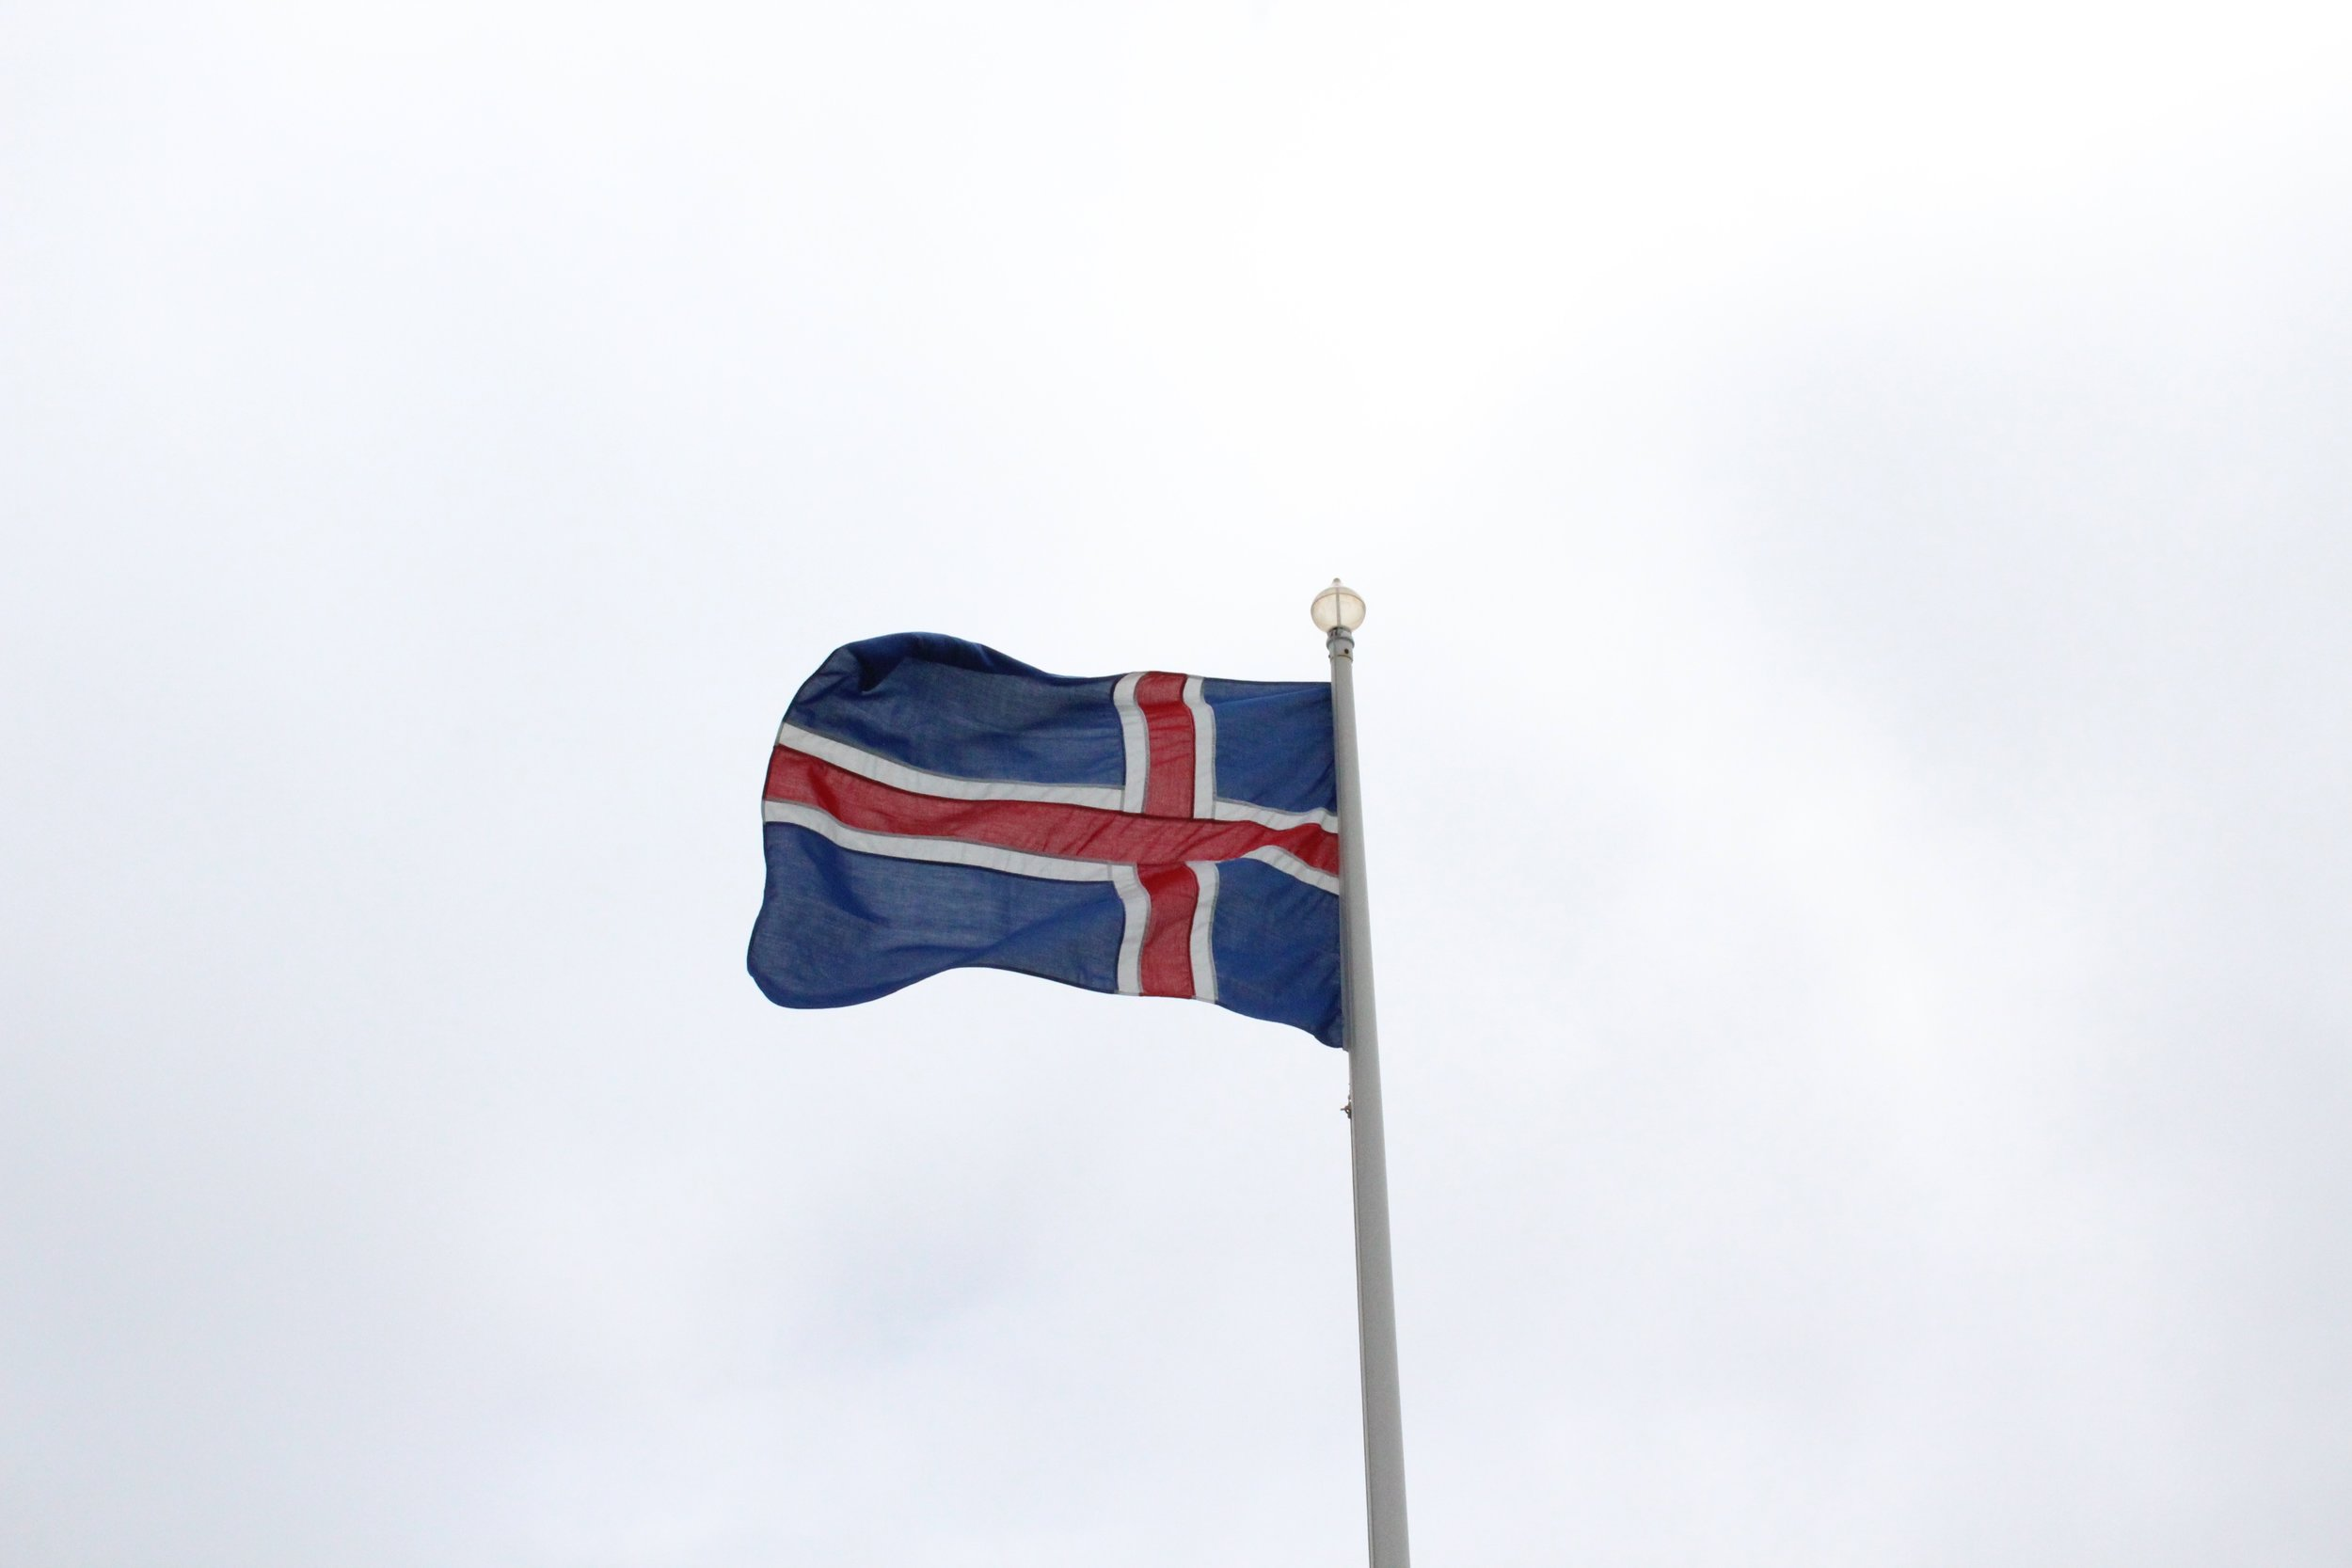 The Icelandic flag is always waving in windy Iceland.